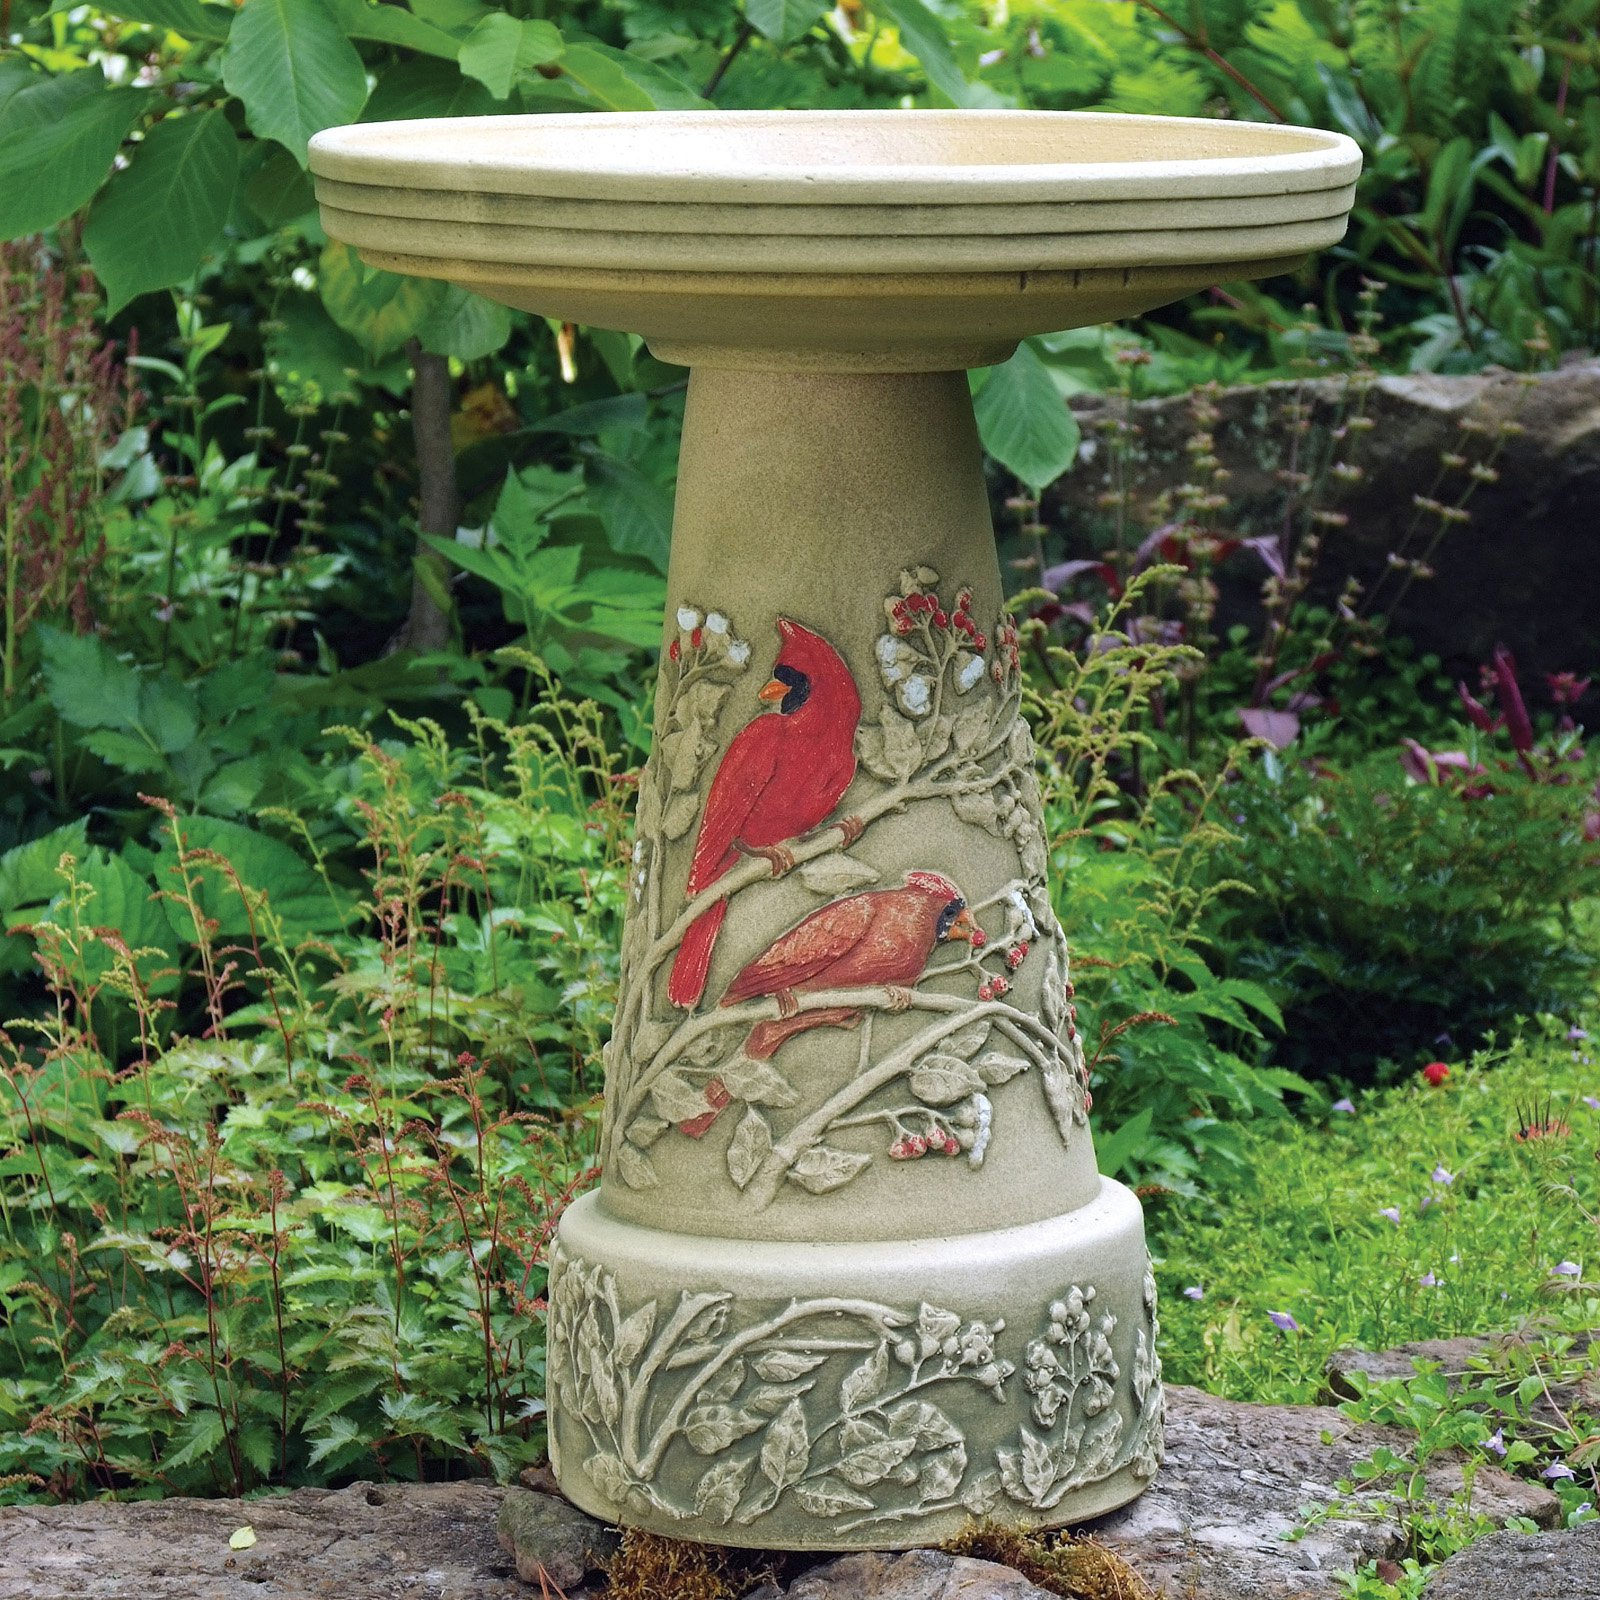 Burley Clay Hand Painted Summer Cardinal Ceramic Birdbath by Backyard Nature Products Inc